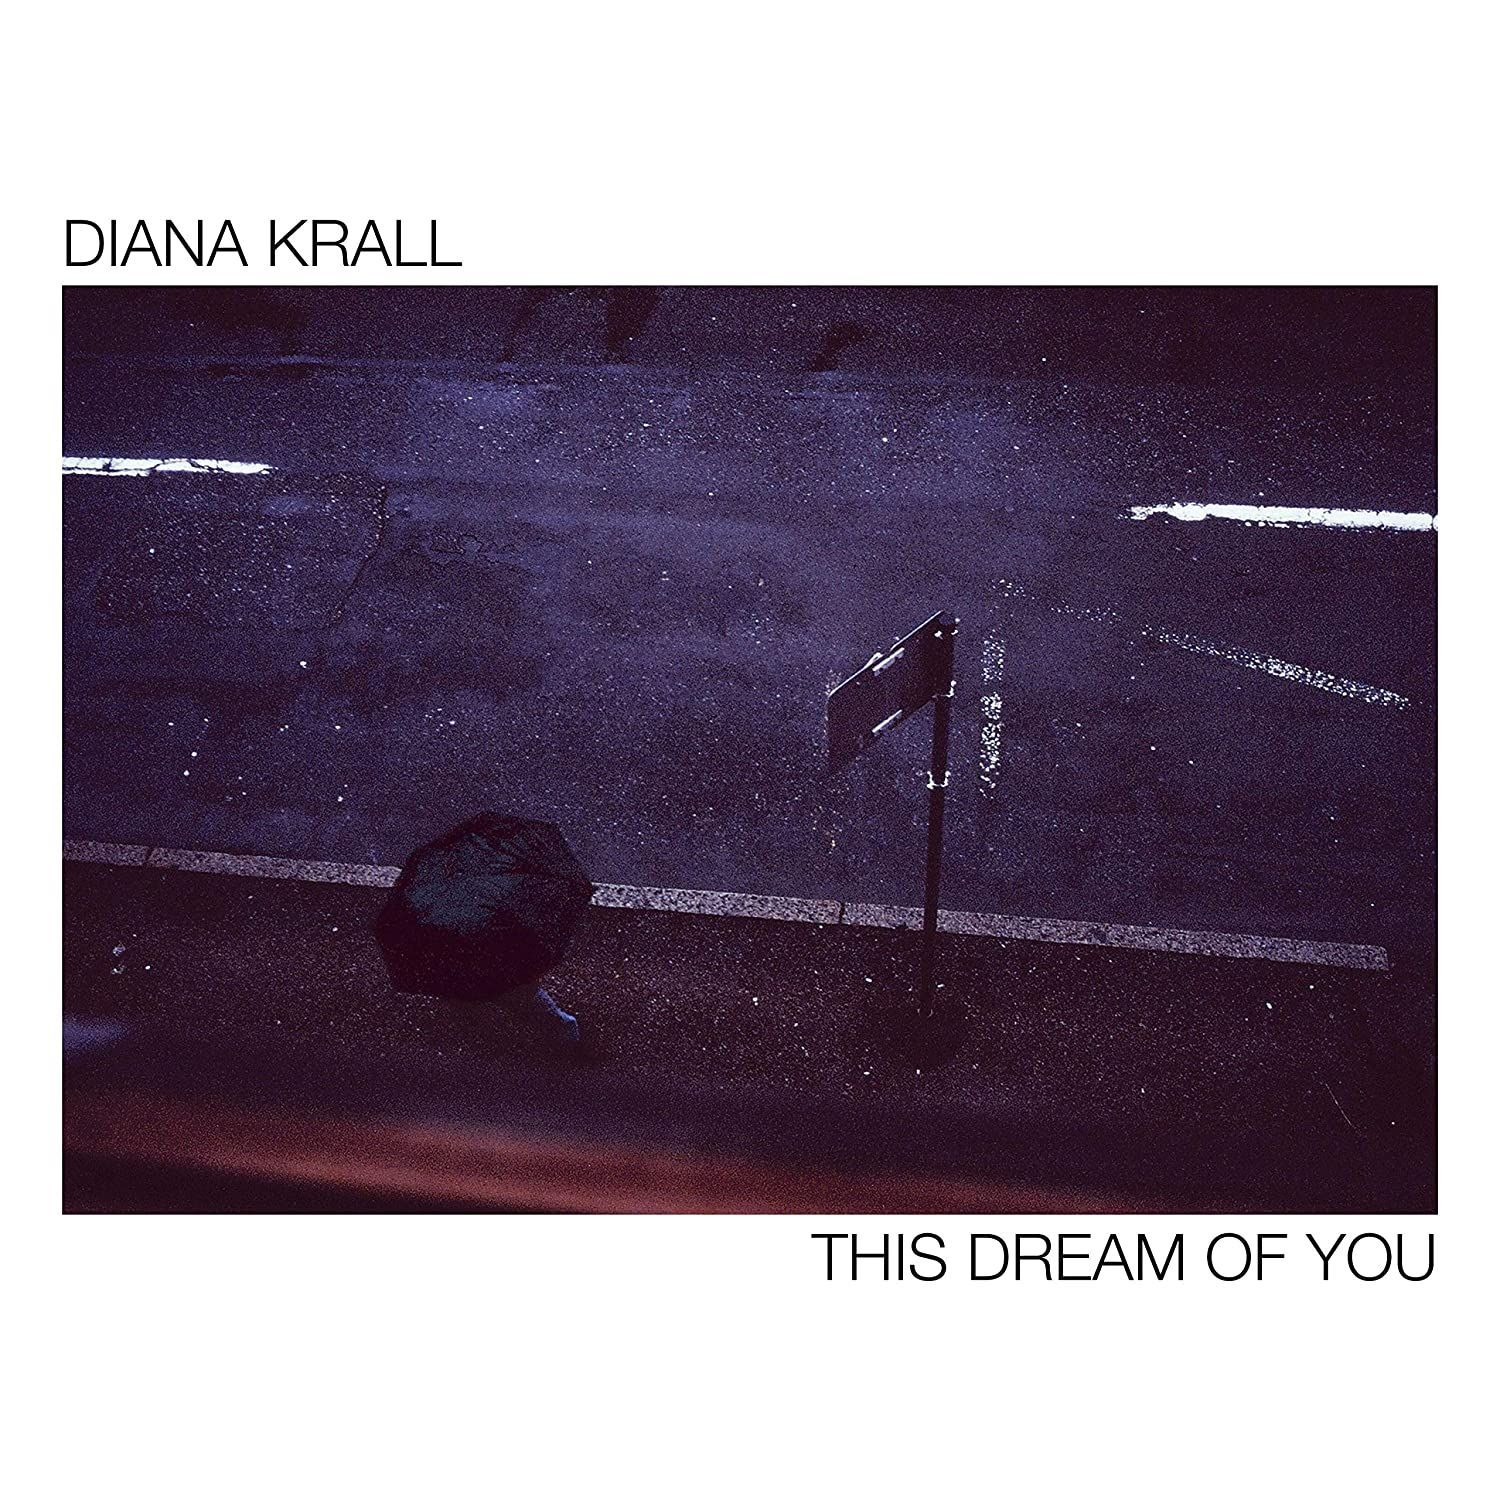 Diana Krall: This Dream of You